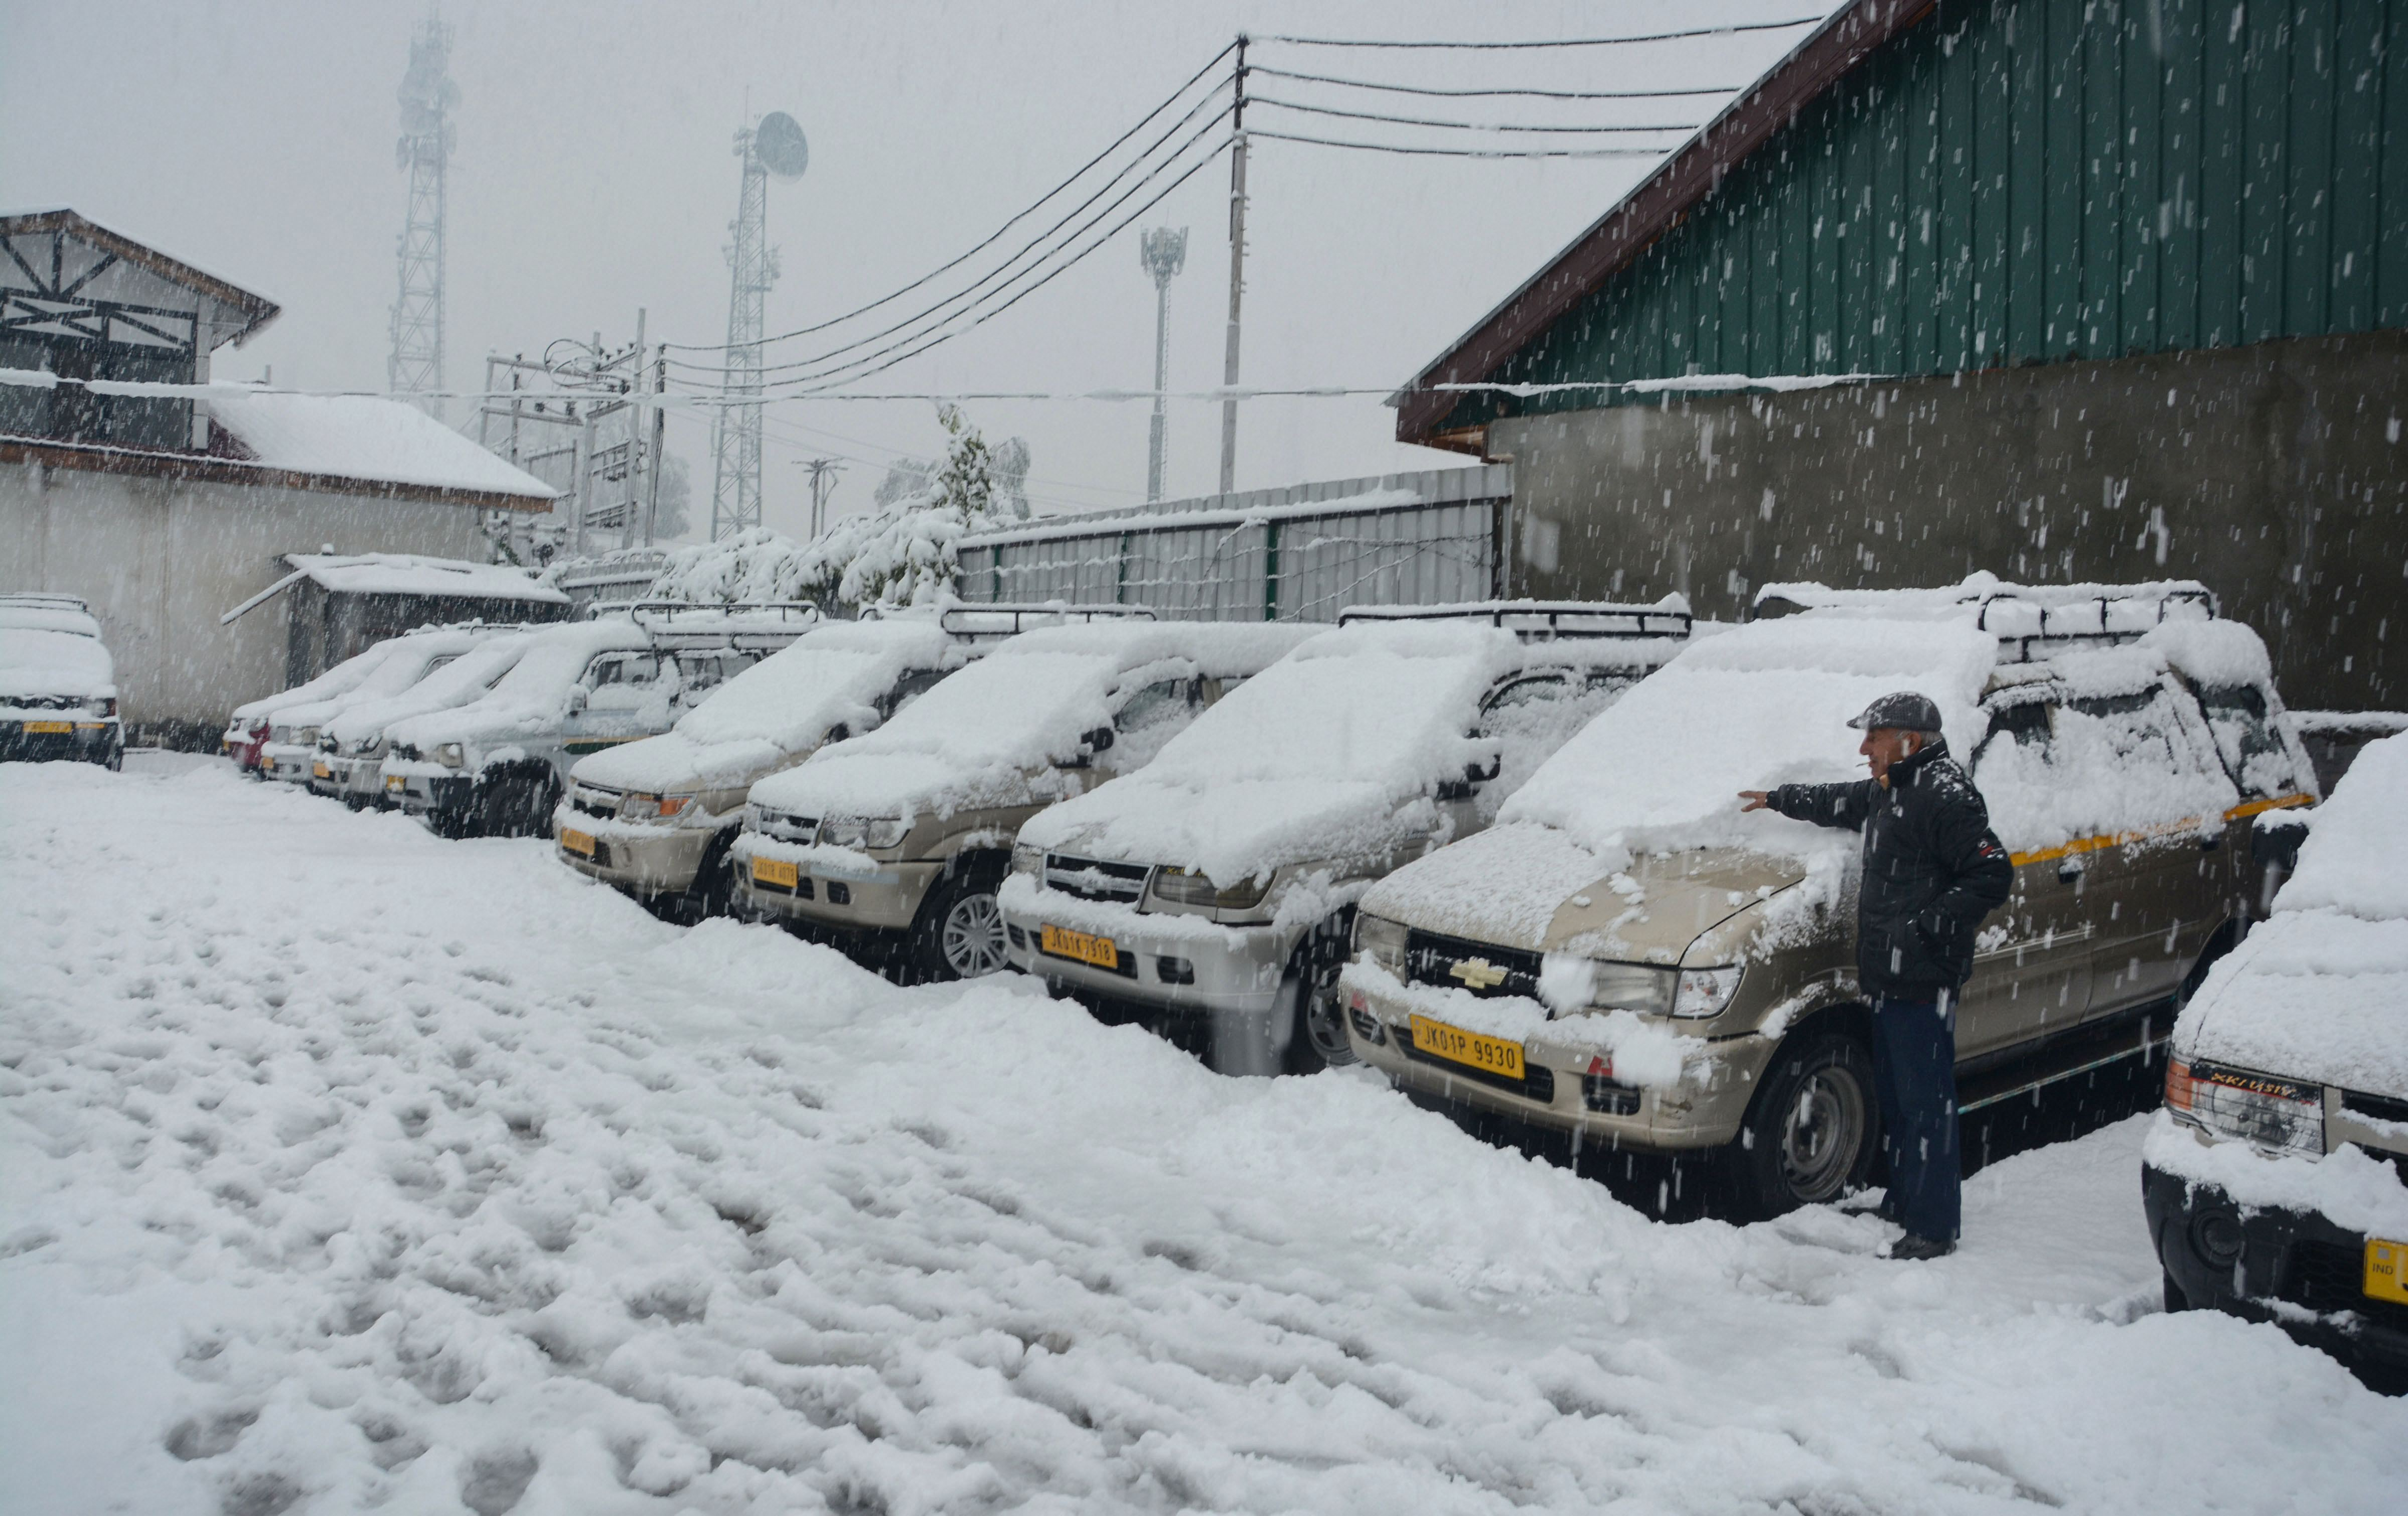 A taxi owner removes snow from his vehicle during the season's first heavy snowfall, in Srinagar, Thursday, November 7, 2019.